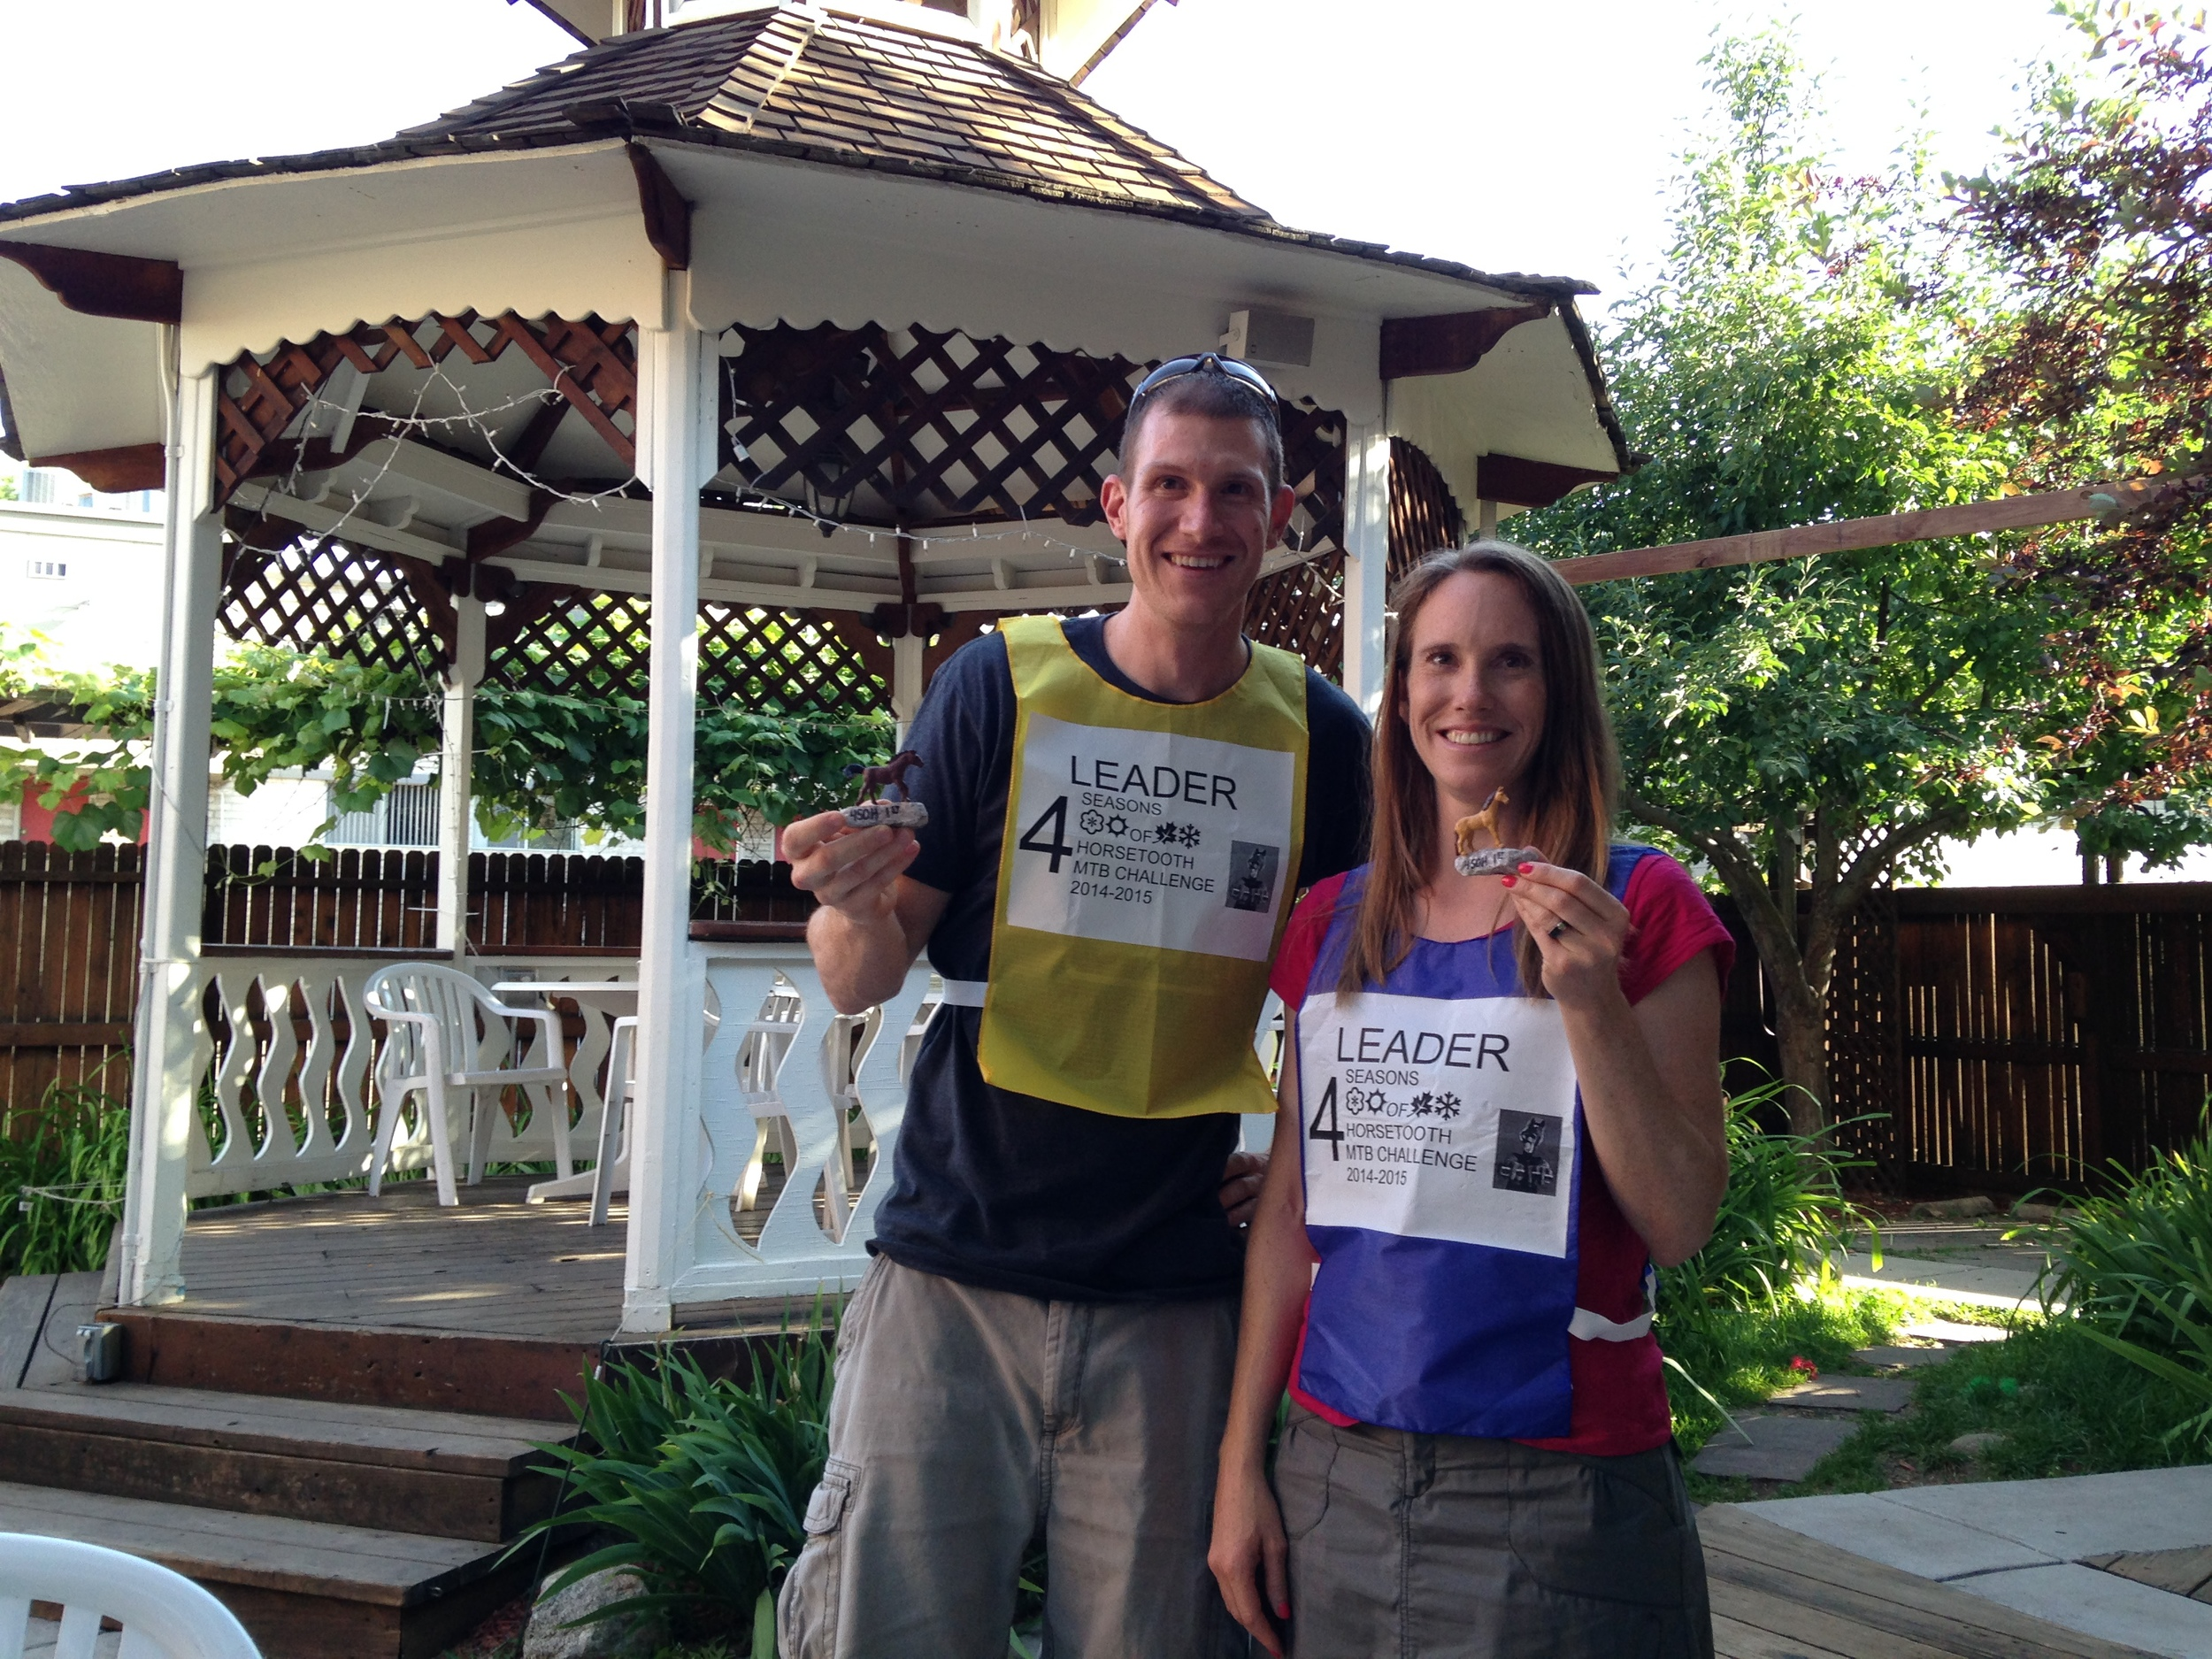 Winners of the Inaugural 4SOH Mountain Bike Challenge - Ben Parman and Heather Baumgartner (and their trophies)